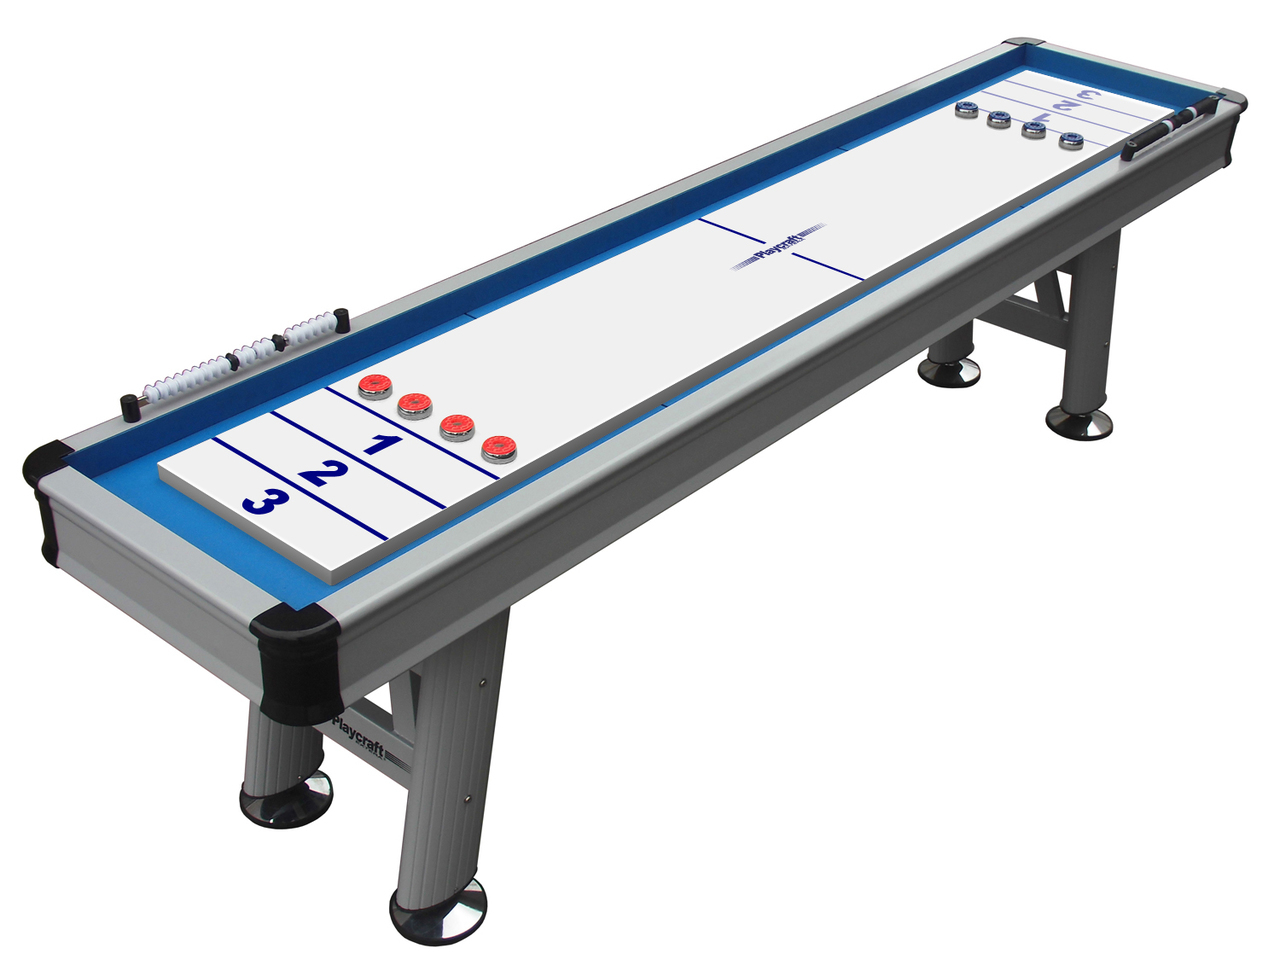 12' Extera Outdoor Shuffleboard Table